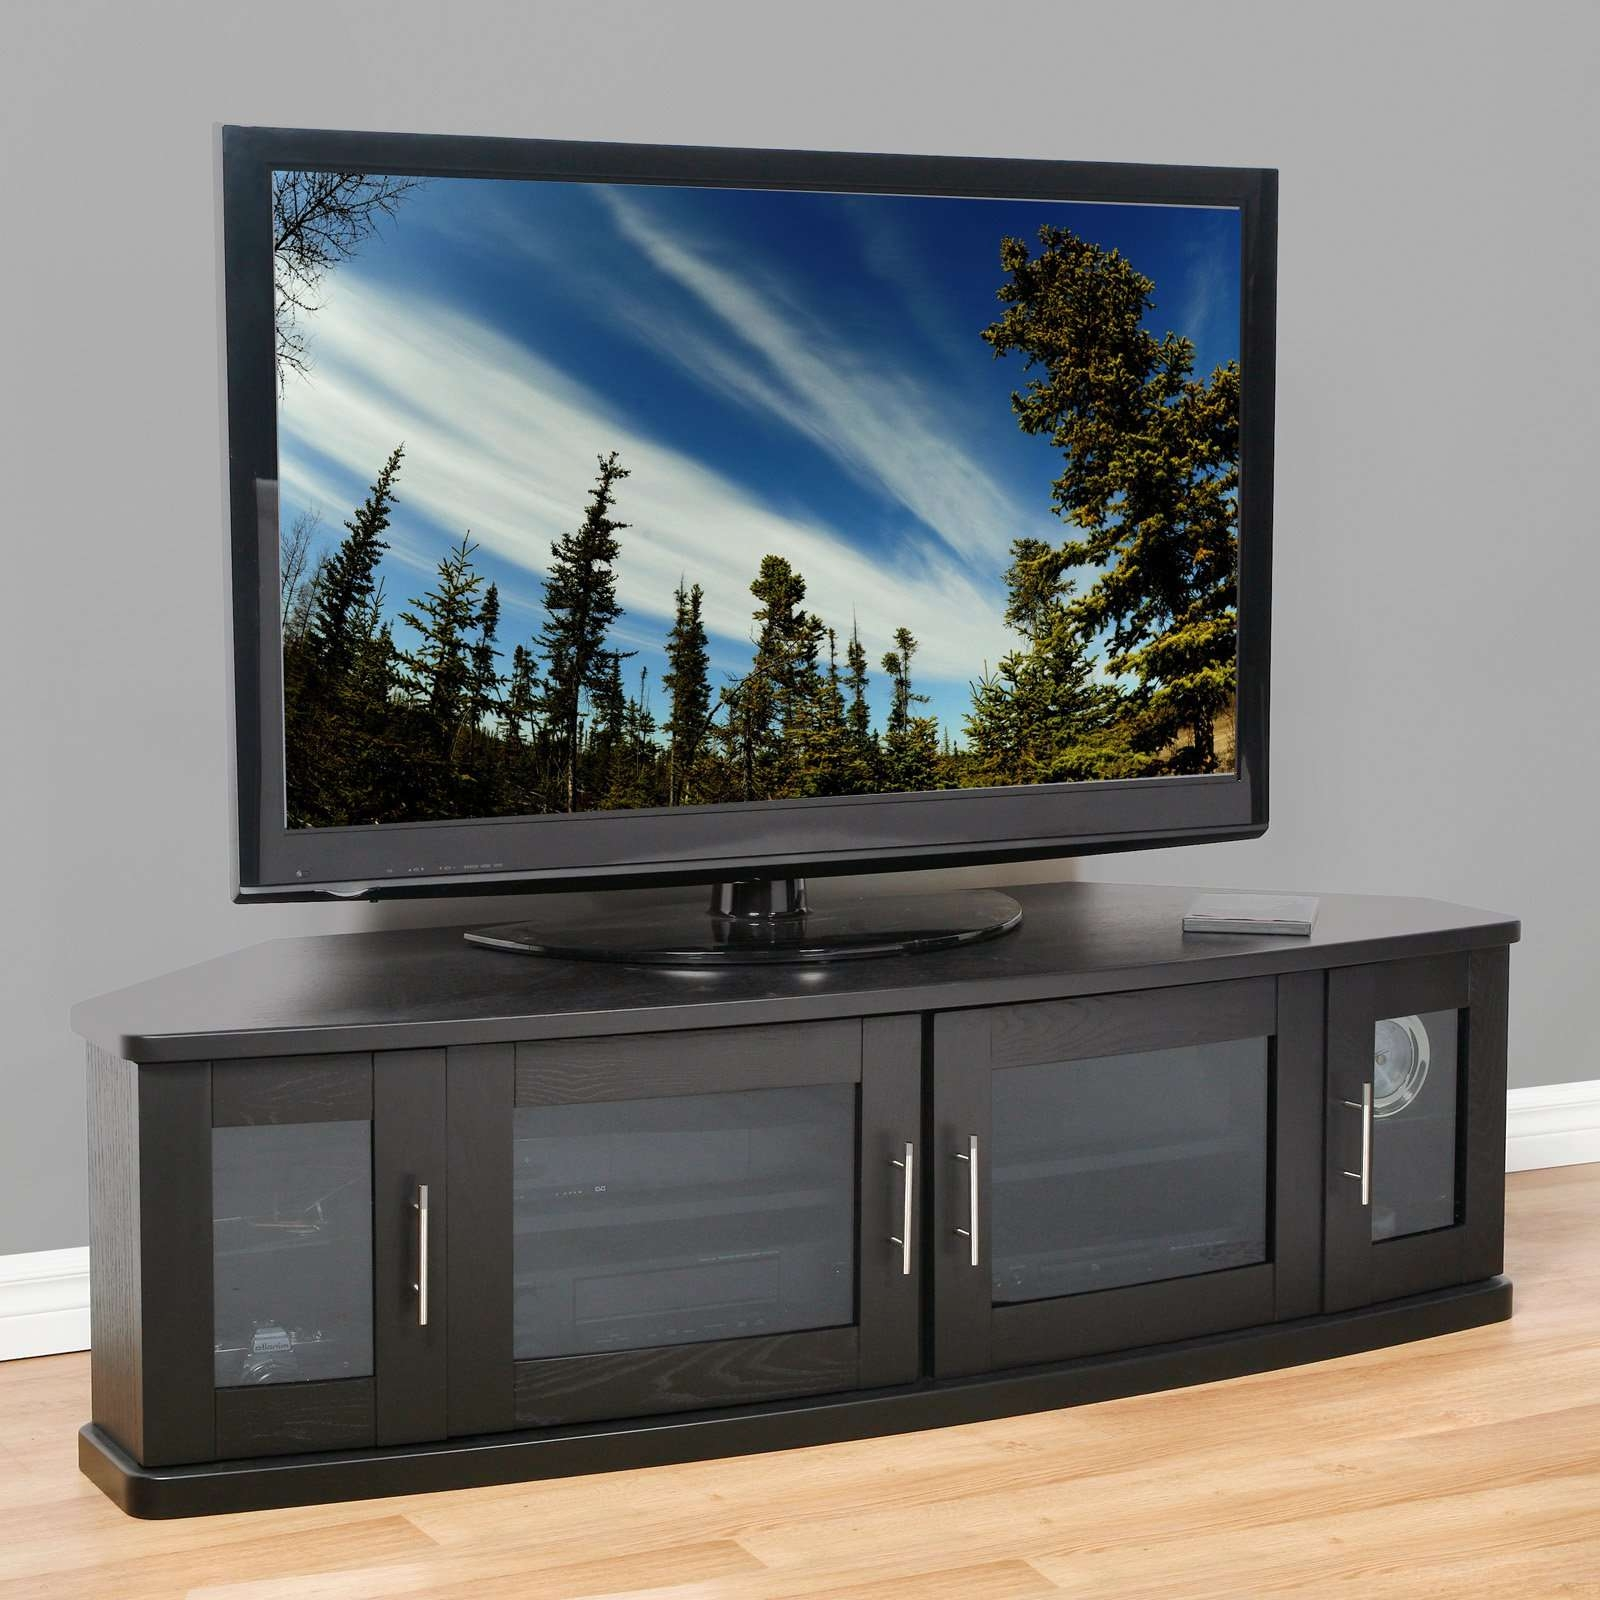 Plateau Newport 62 Inch Corner Tv Stand In Black – Walmart Throughout Black Corner Tv Cabinets (View 15 of 20)